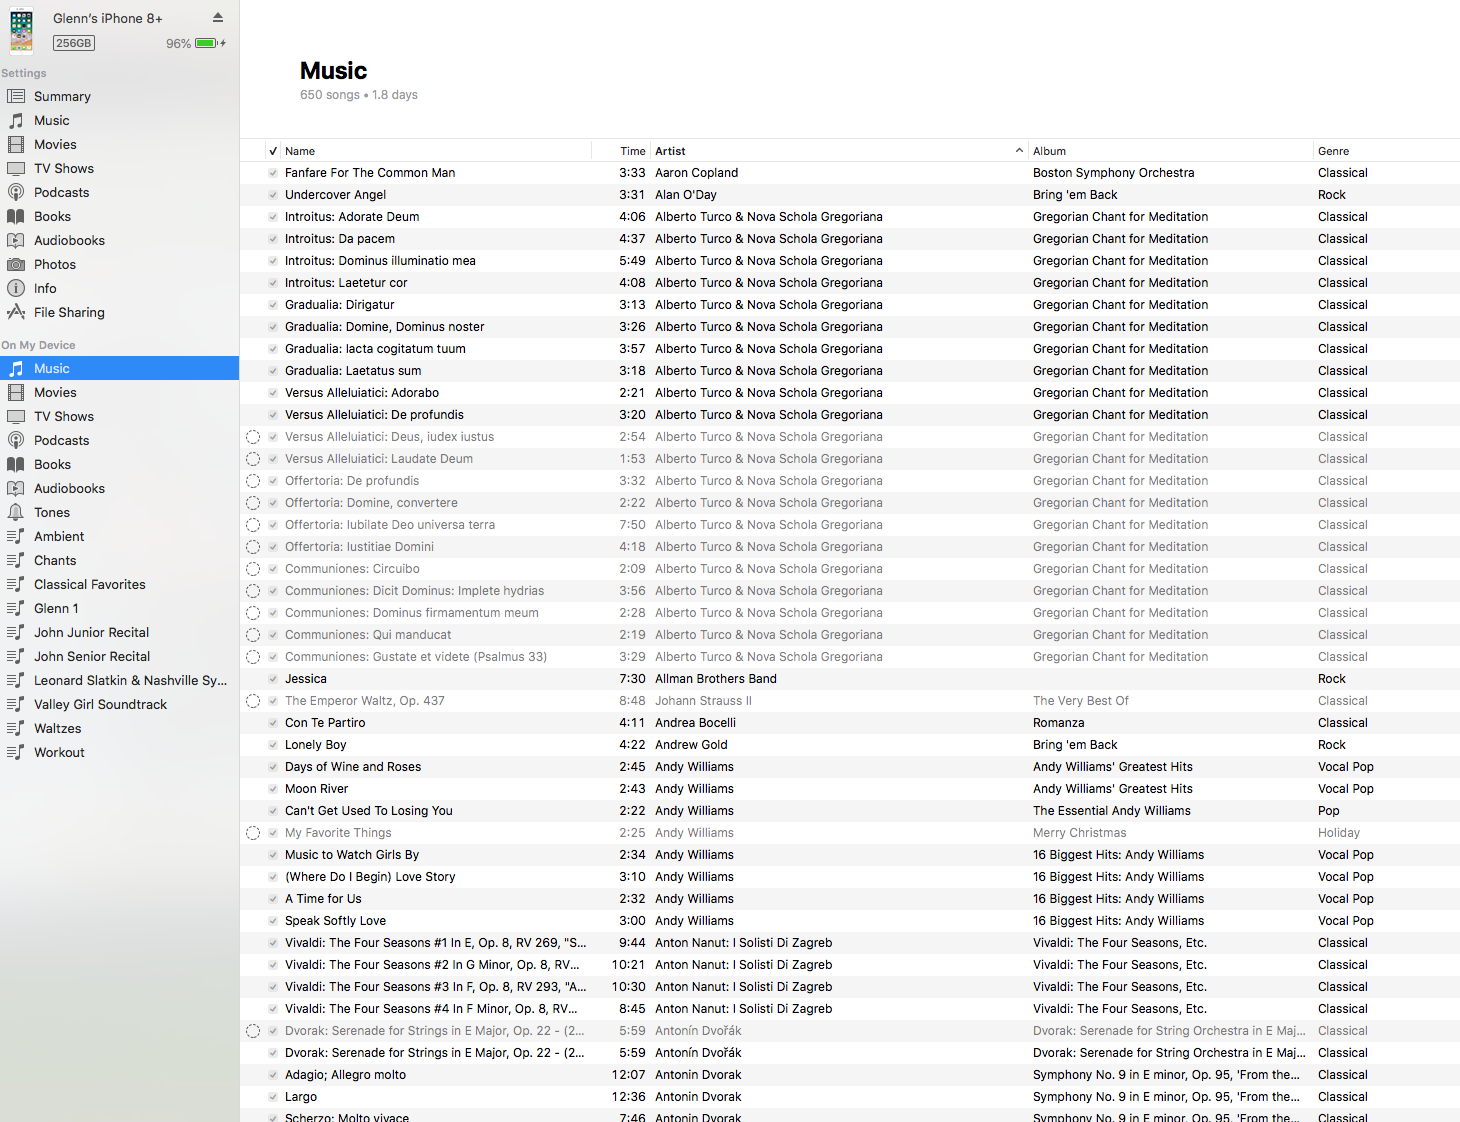 Songs Grayed Out In iTunes 12 8 0 150 - Apple Community